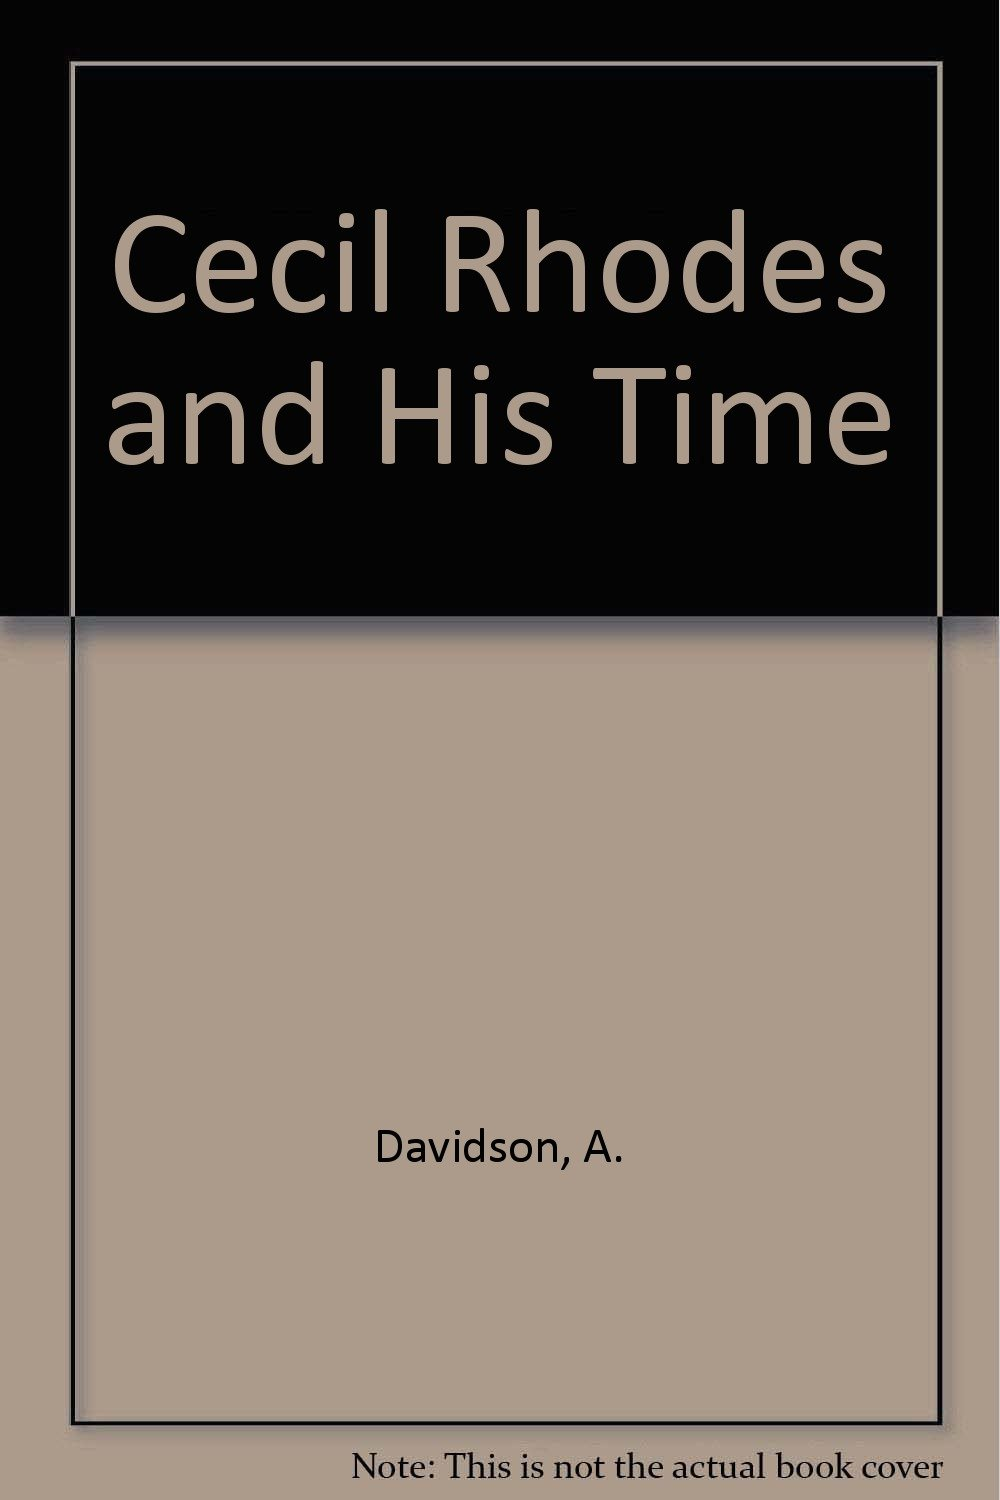 Cecil Rhodes and His Time